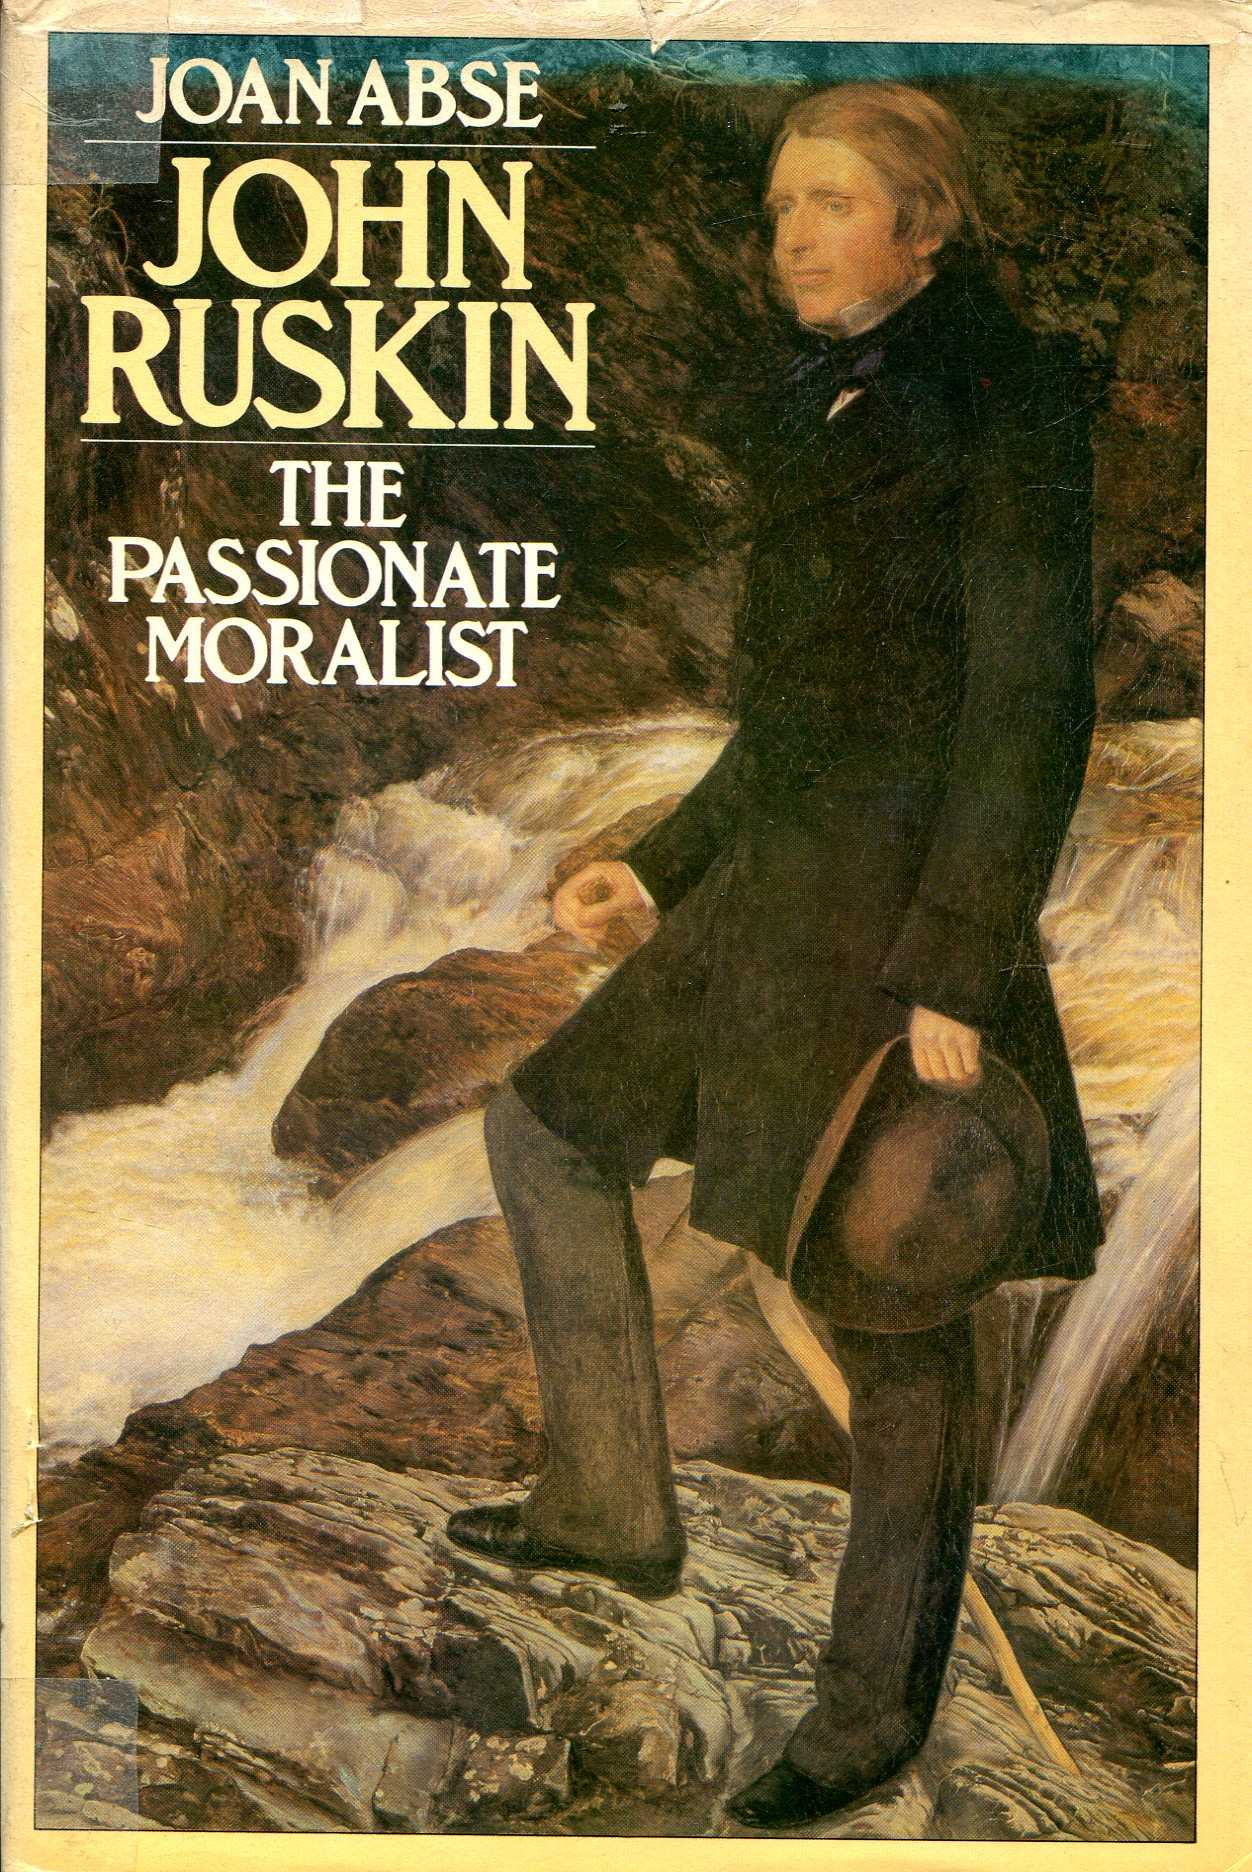 Image for John Ruskin: The Passionate Moralist